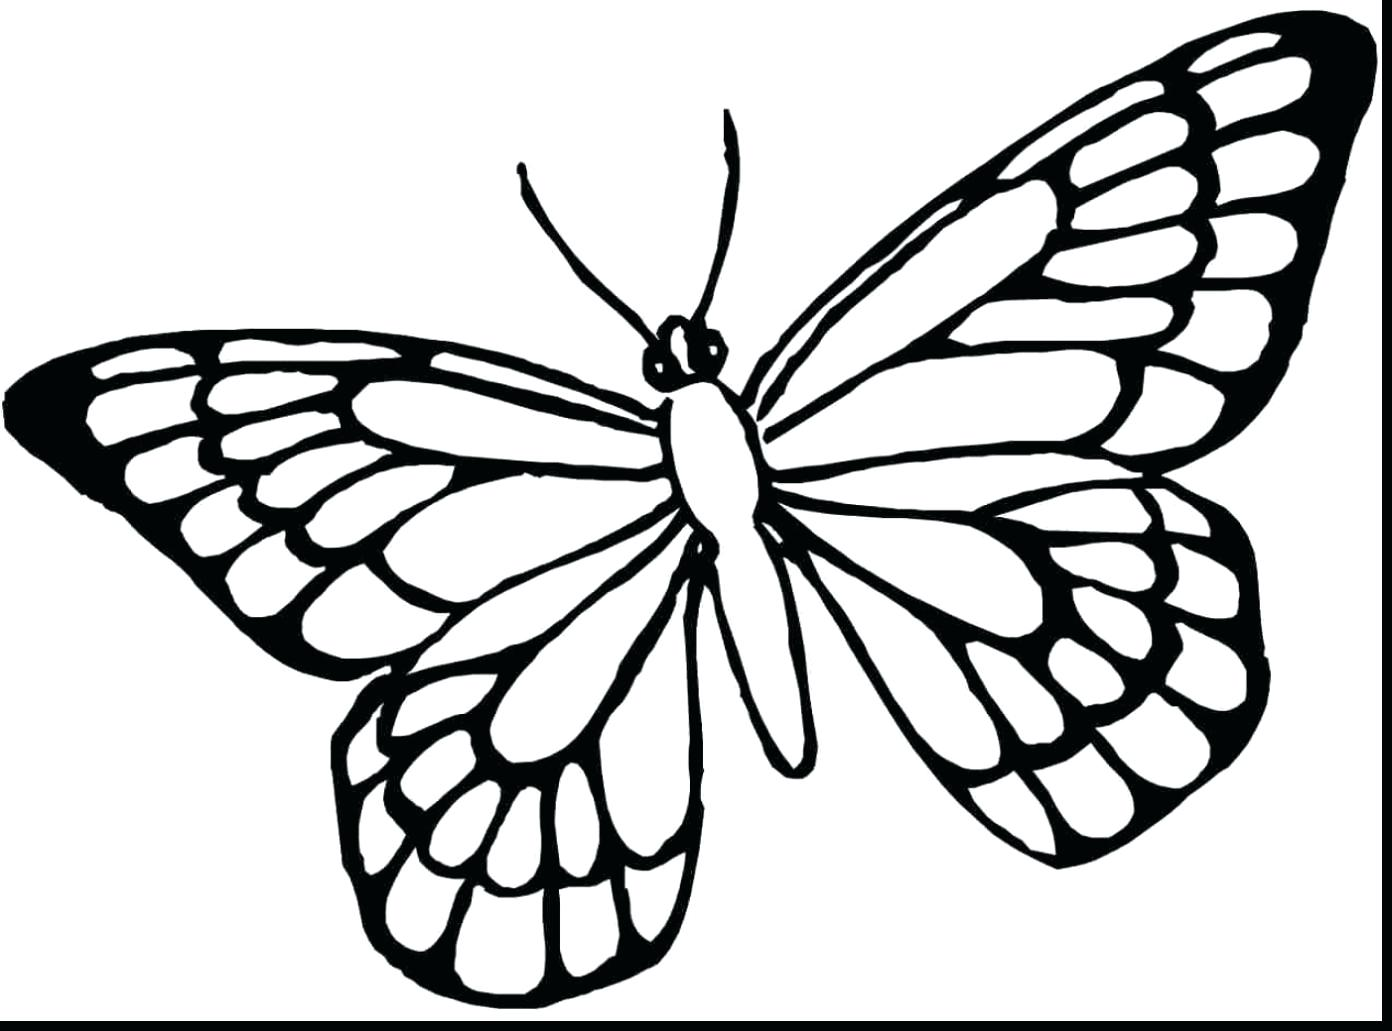 1392x1031 Outline Only Monarch Butterfly Mask Template Tattoo Coloring